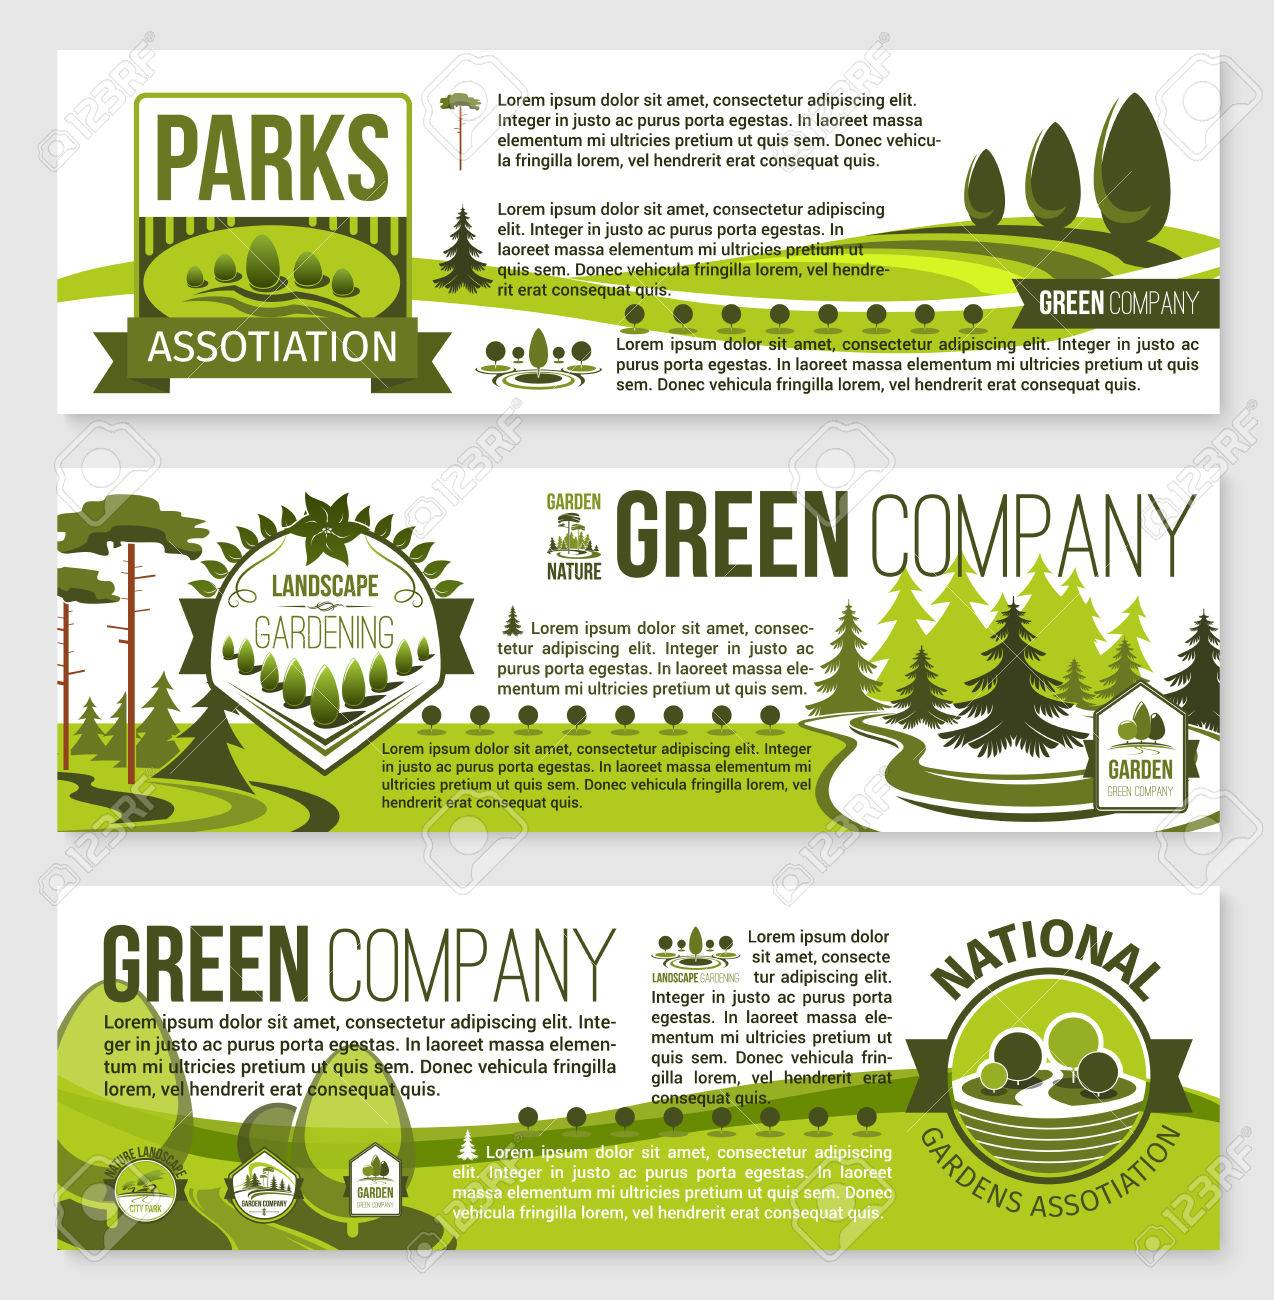 Landscaping And Gardening Banner Template Design Royalty Free Cliparts Vectors And Stock Illustration Image 75310095